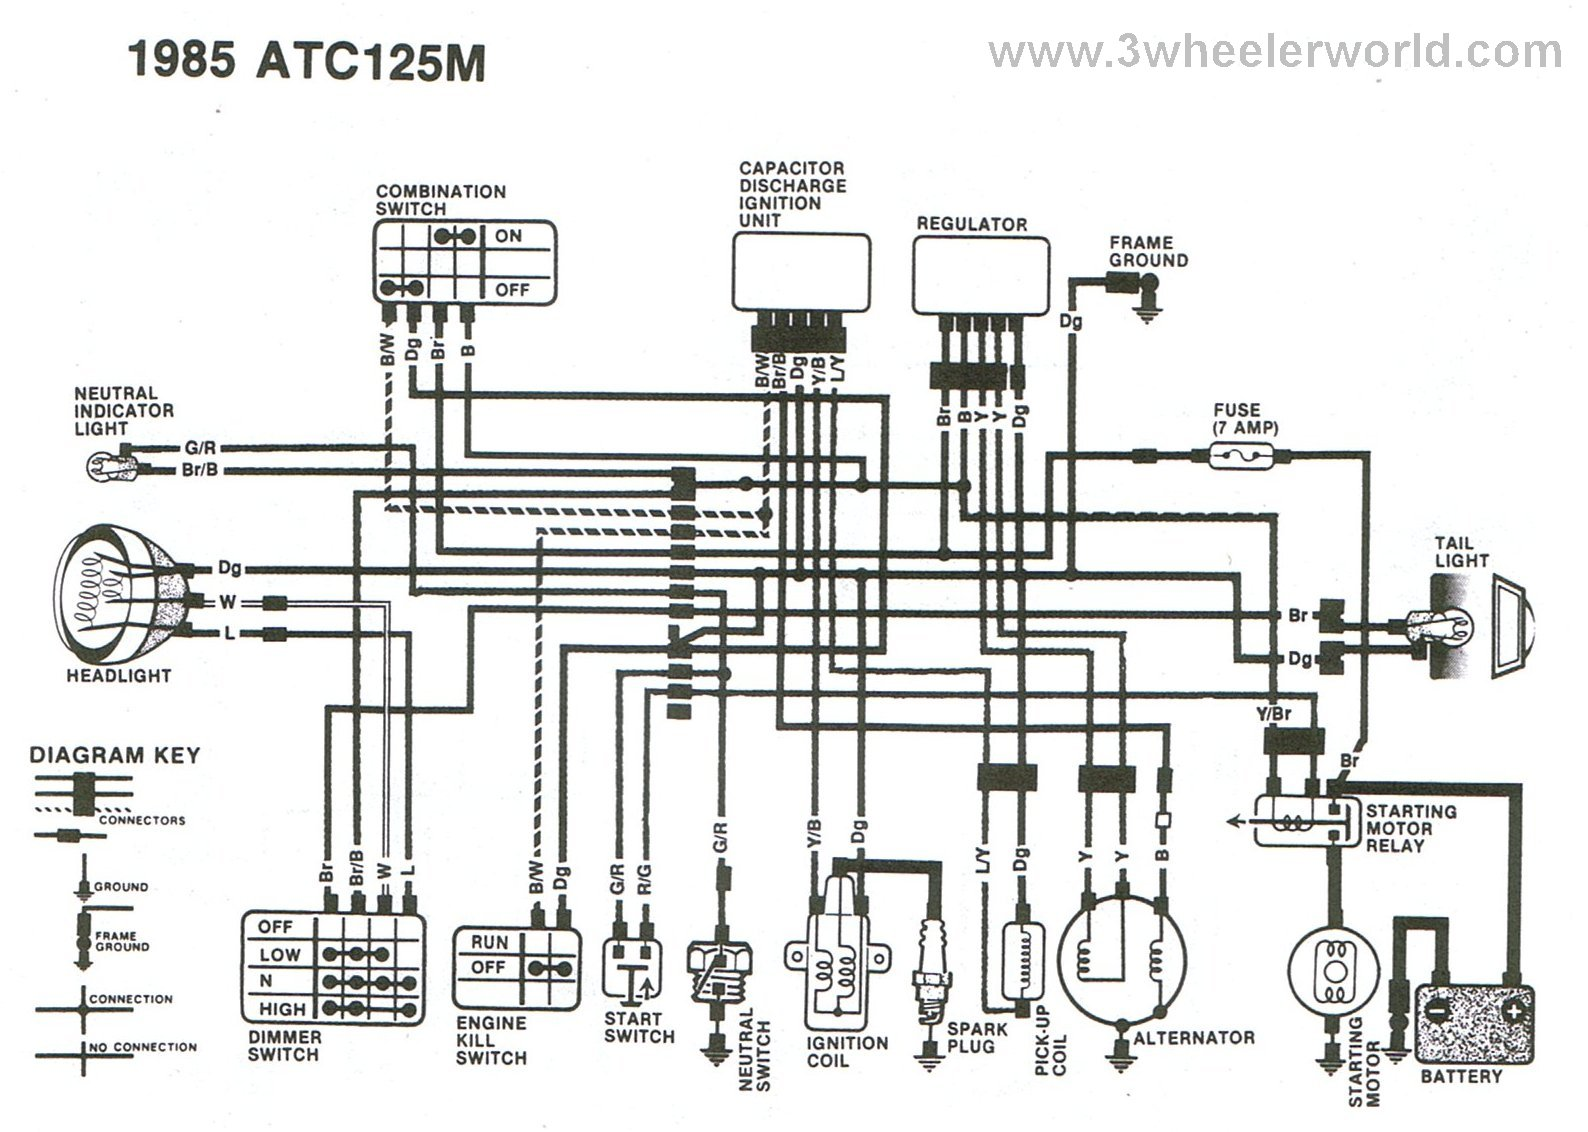 Combination Switch Wiring Diagram Honda - Circuit Diagram Symbols •